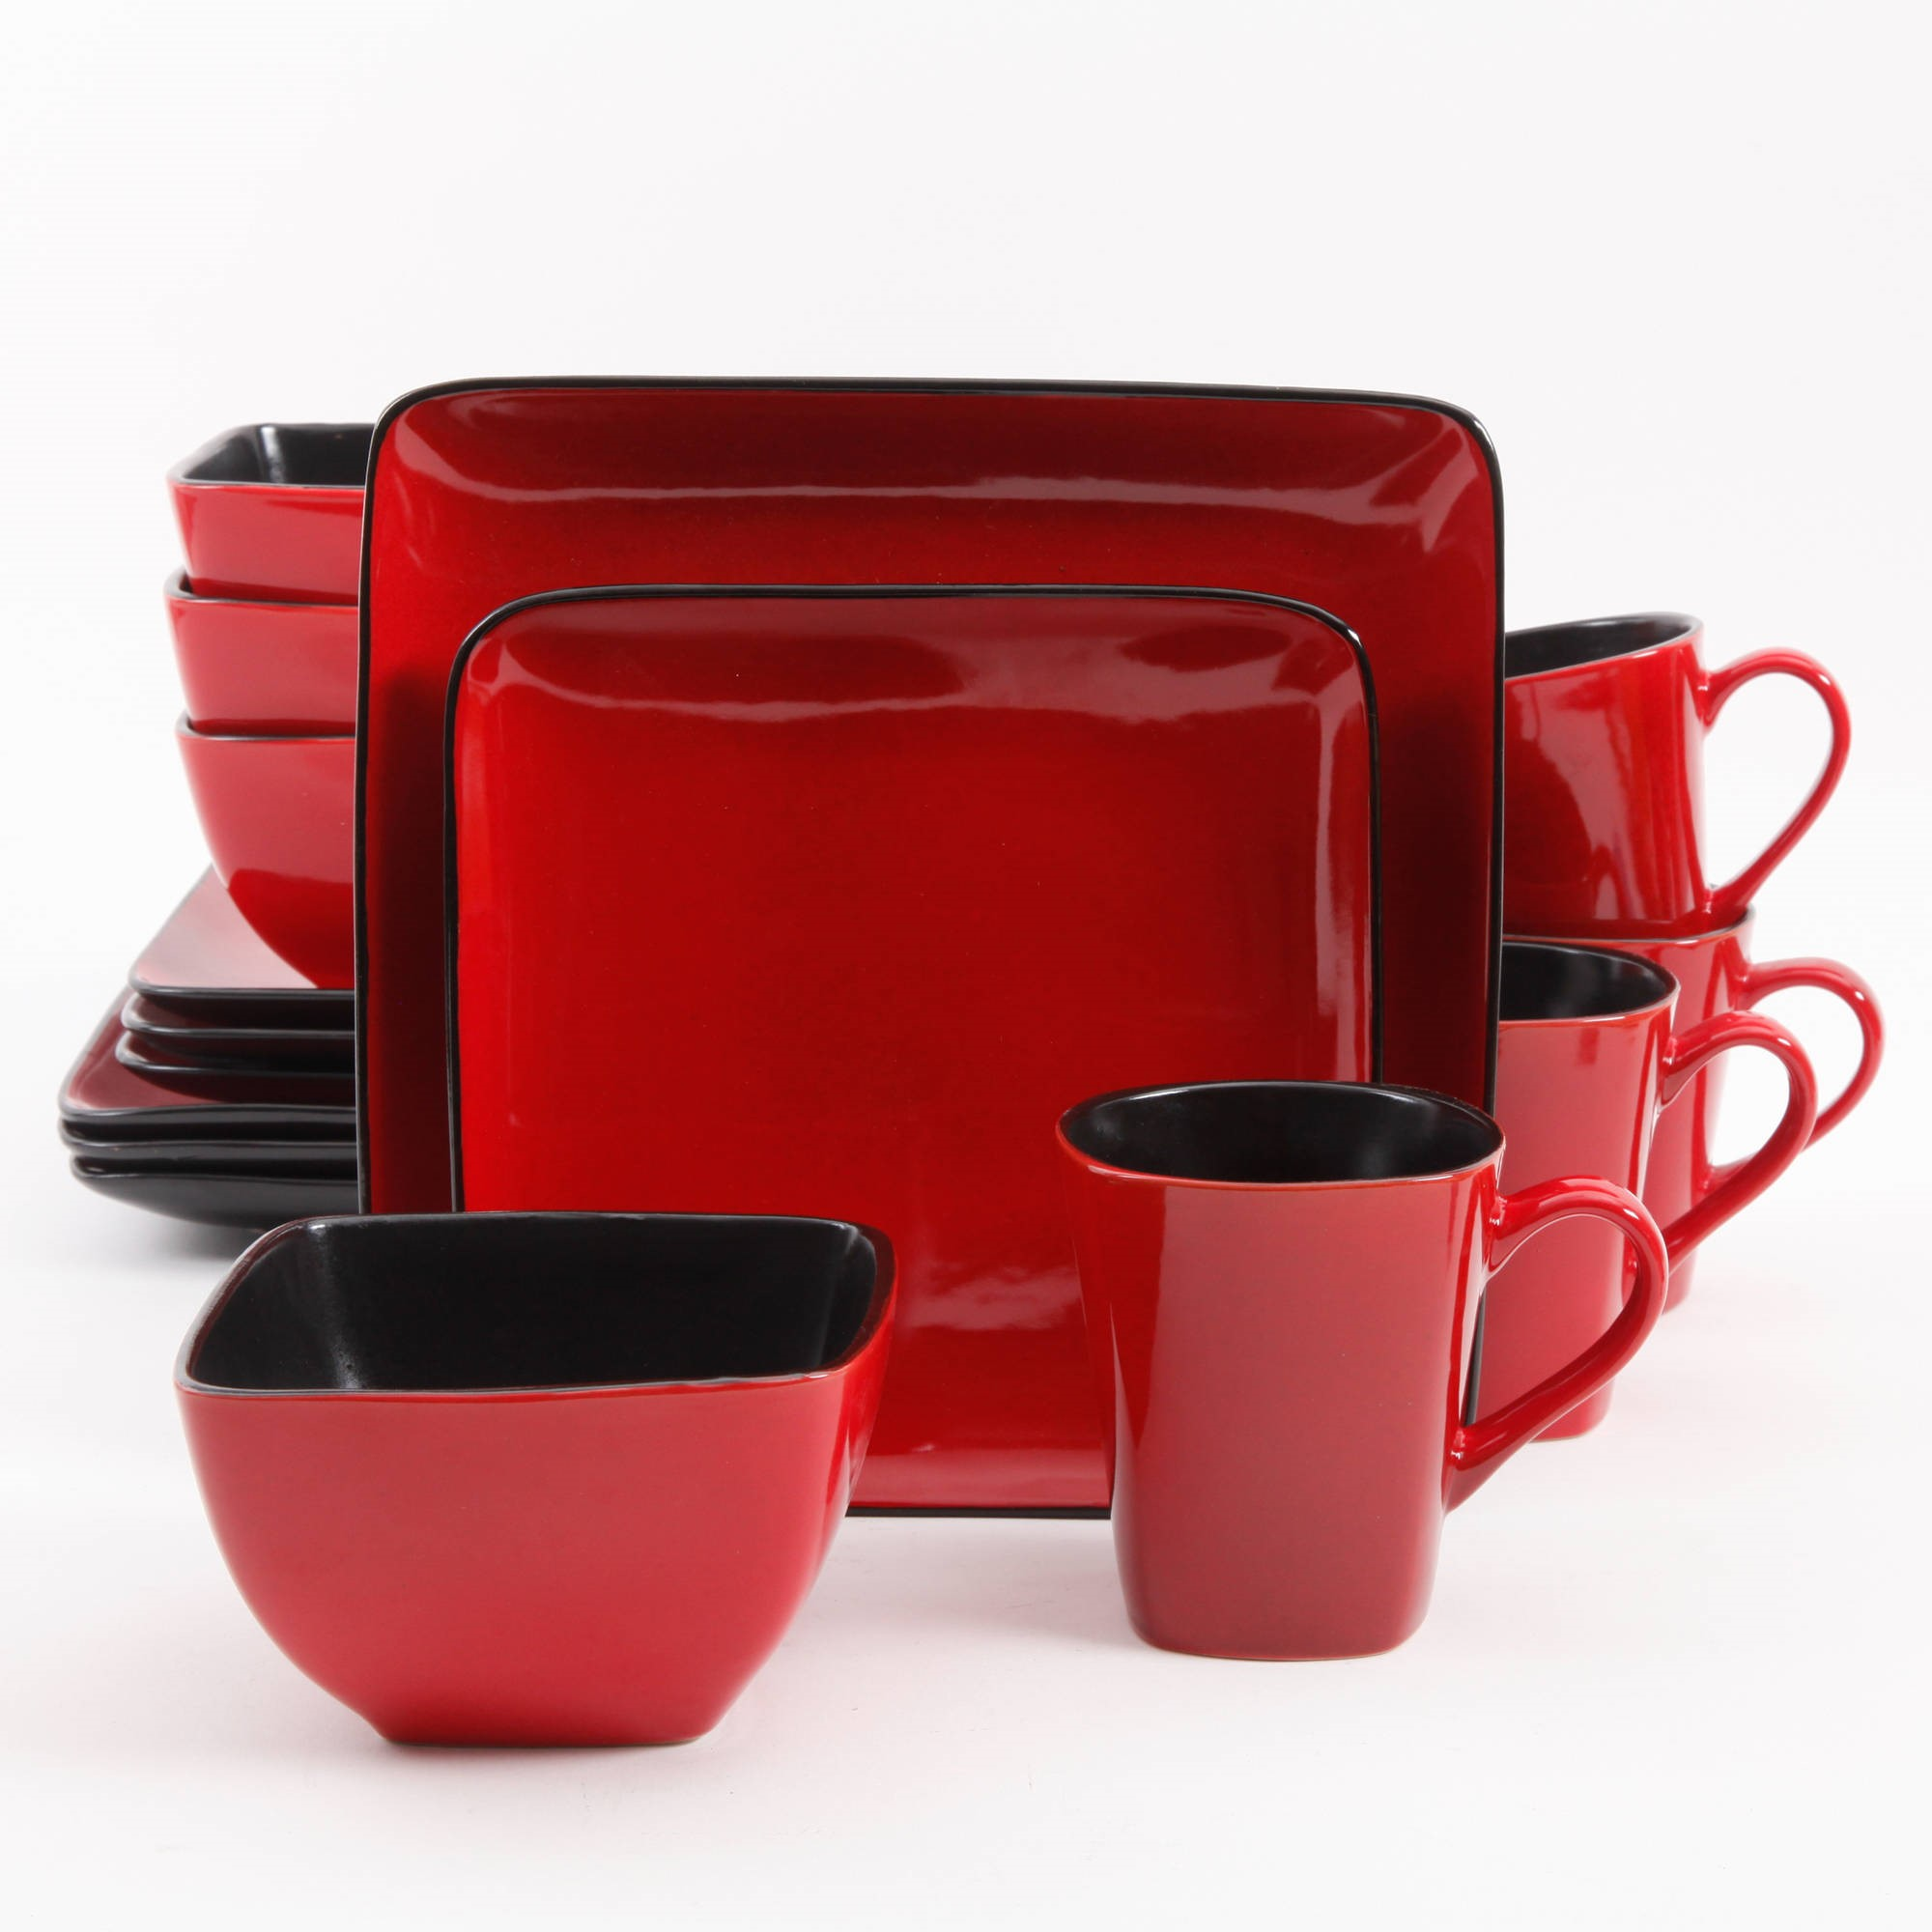 Better Homes & Gardens Rave Square Dinnerware, Red, Set Of 16